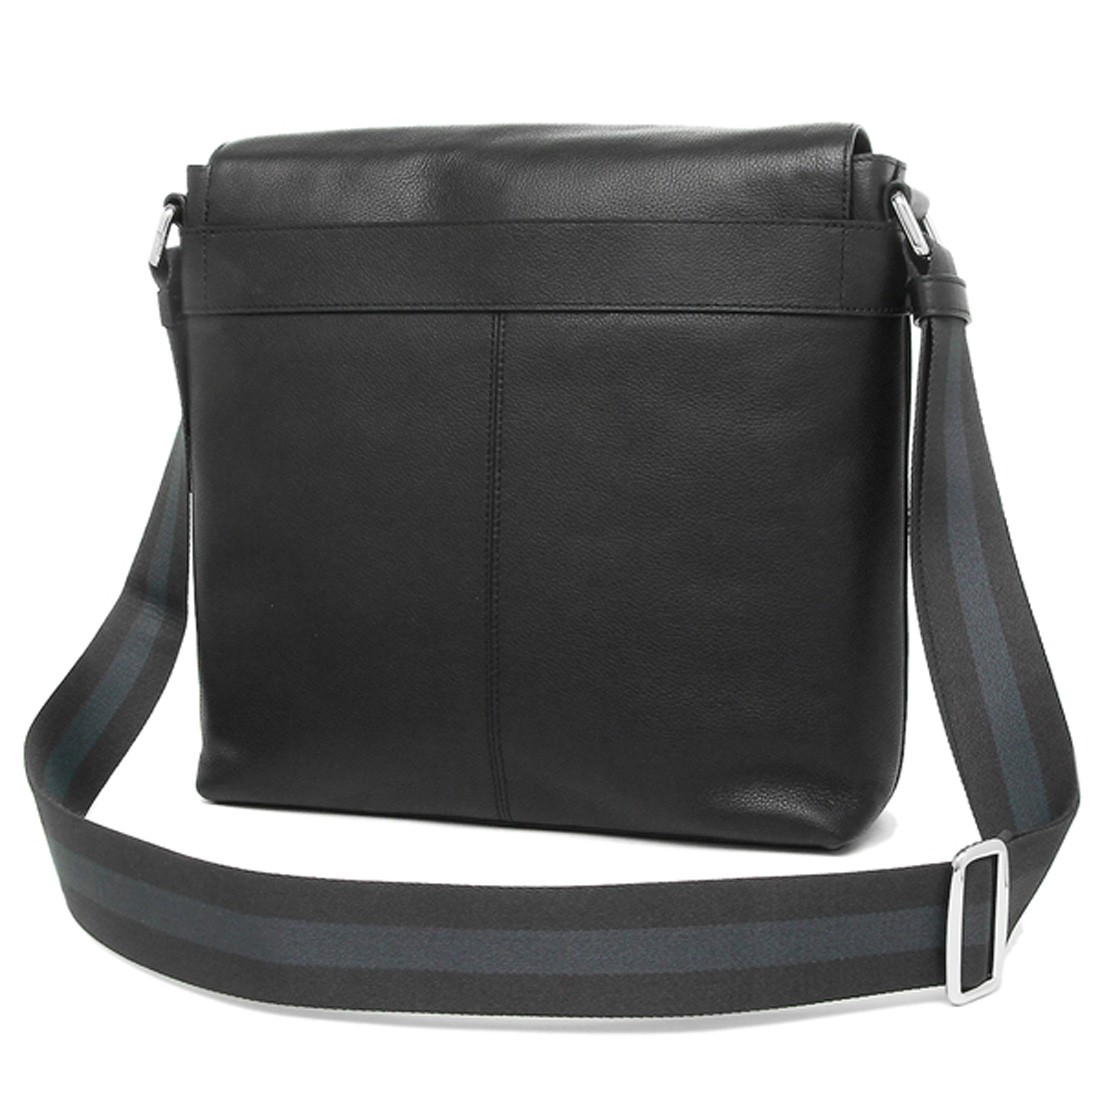 e3e3ca8e60c1 ... shoulder bag in pebble leather 8ab09 1c250  discount code for nwt coach  mens charles small messenger crossbody leather 0aab6 a04fd